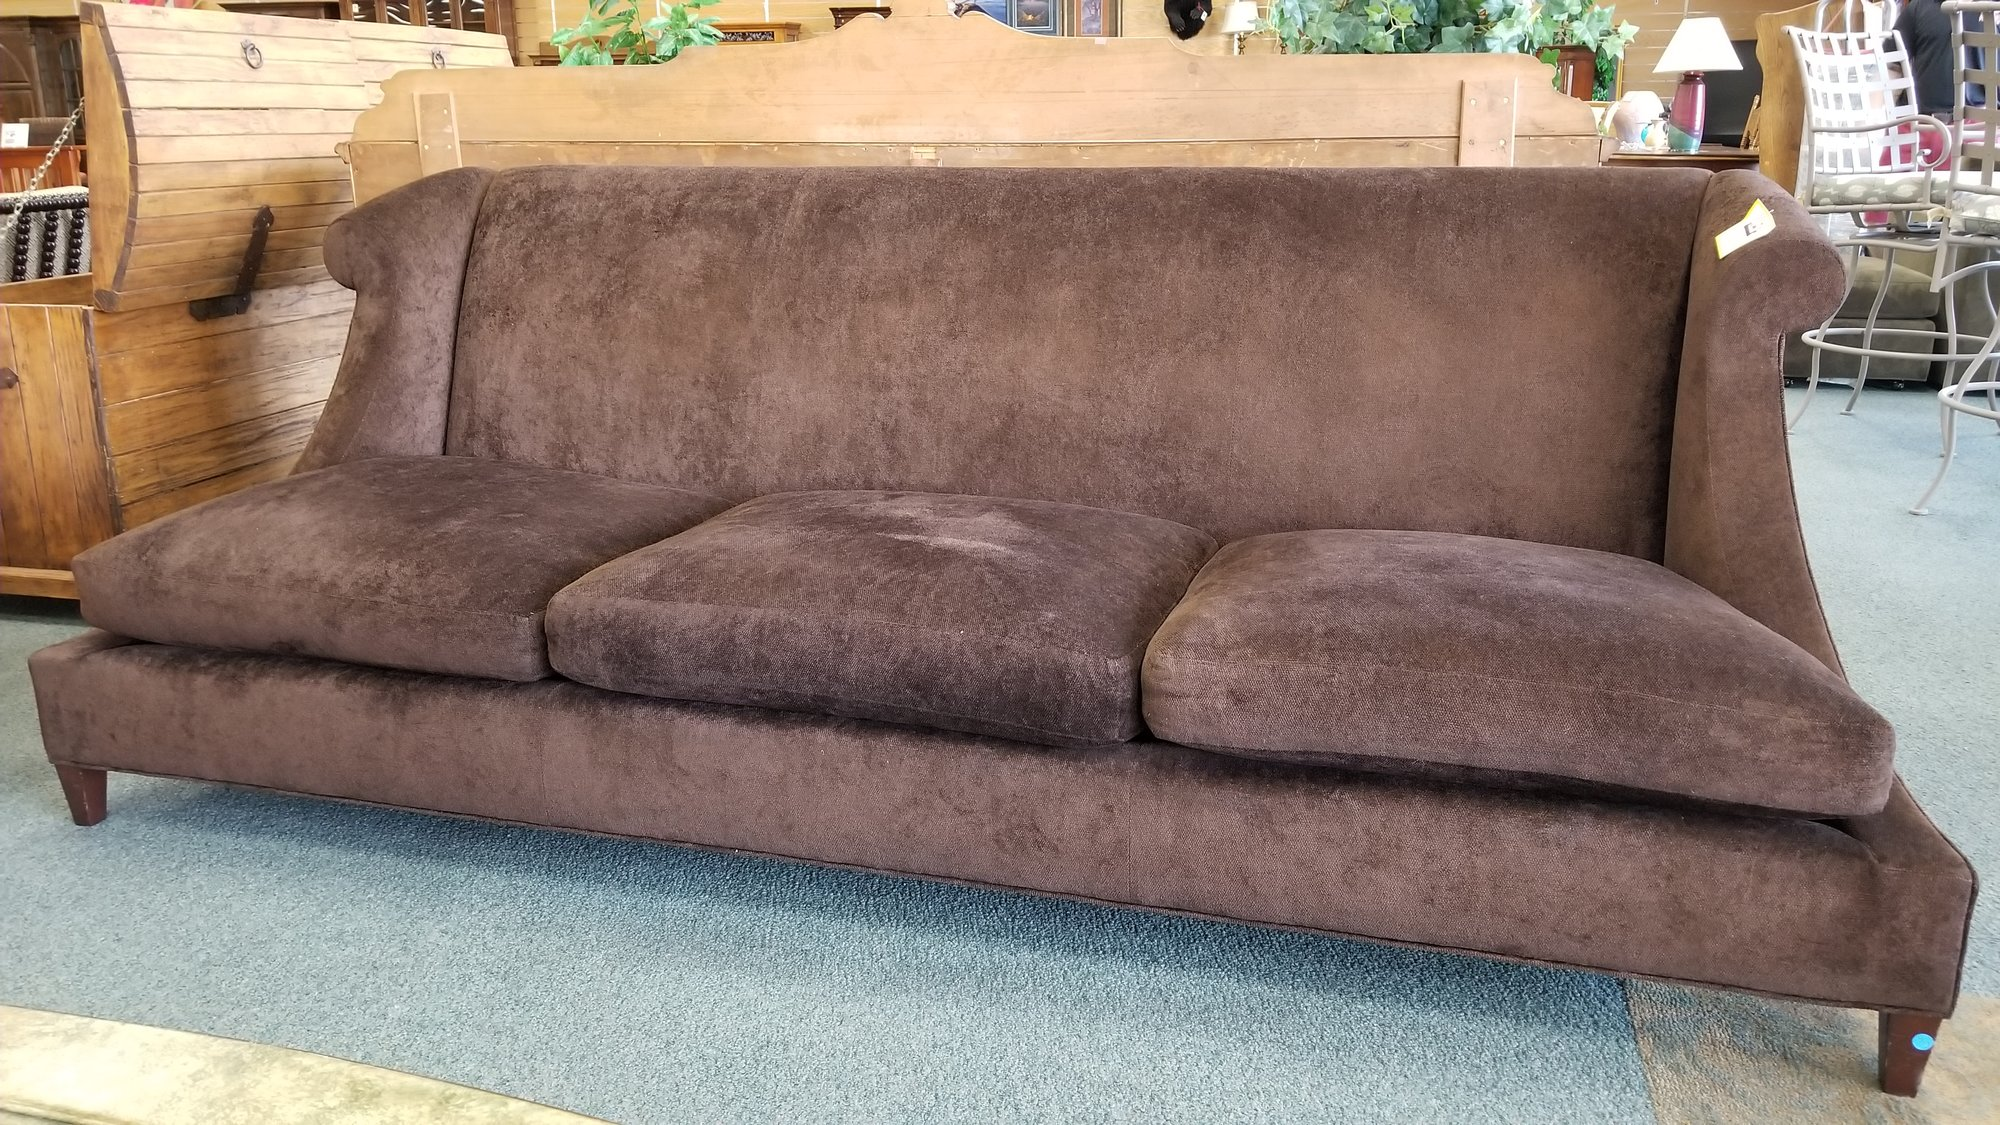 Contemporary Style Sofa, Made By Baker Furniture. Upholstered In Chocolate  Brown Fabric. This